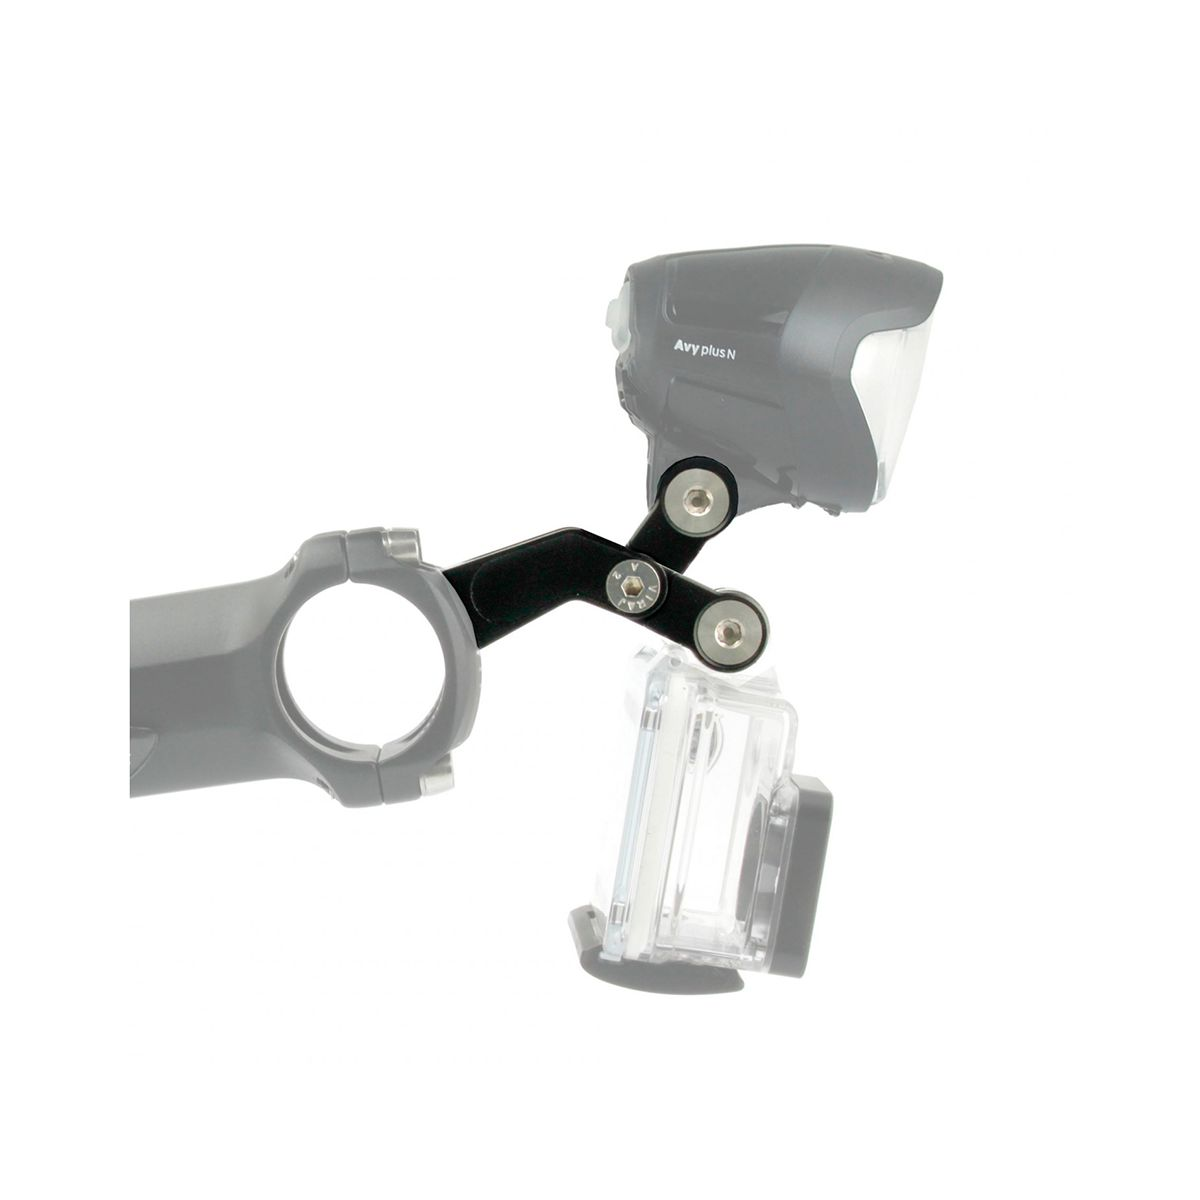 SDS link adapter kit CAM + 10 B6 stem-mounted